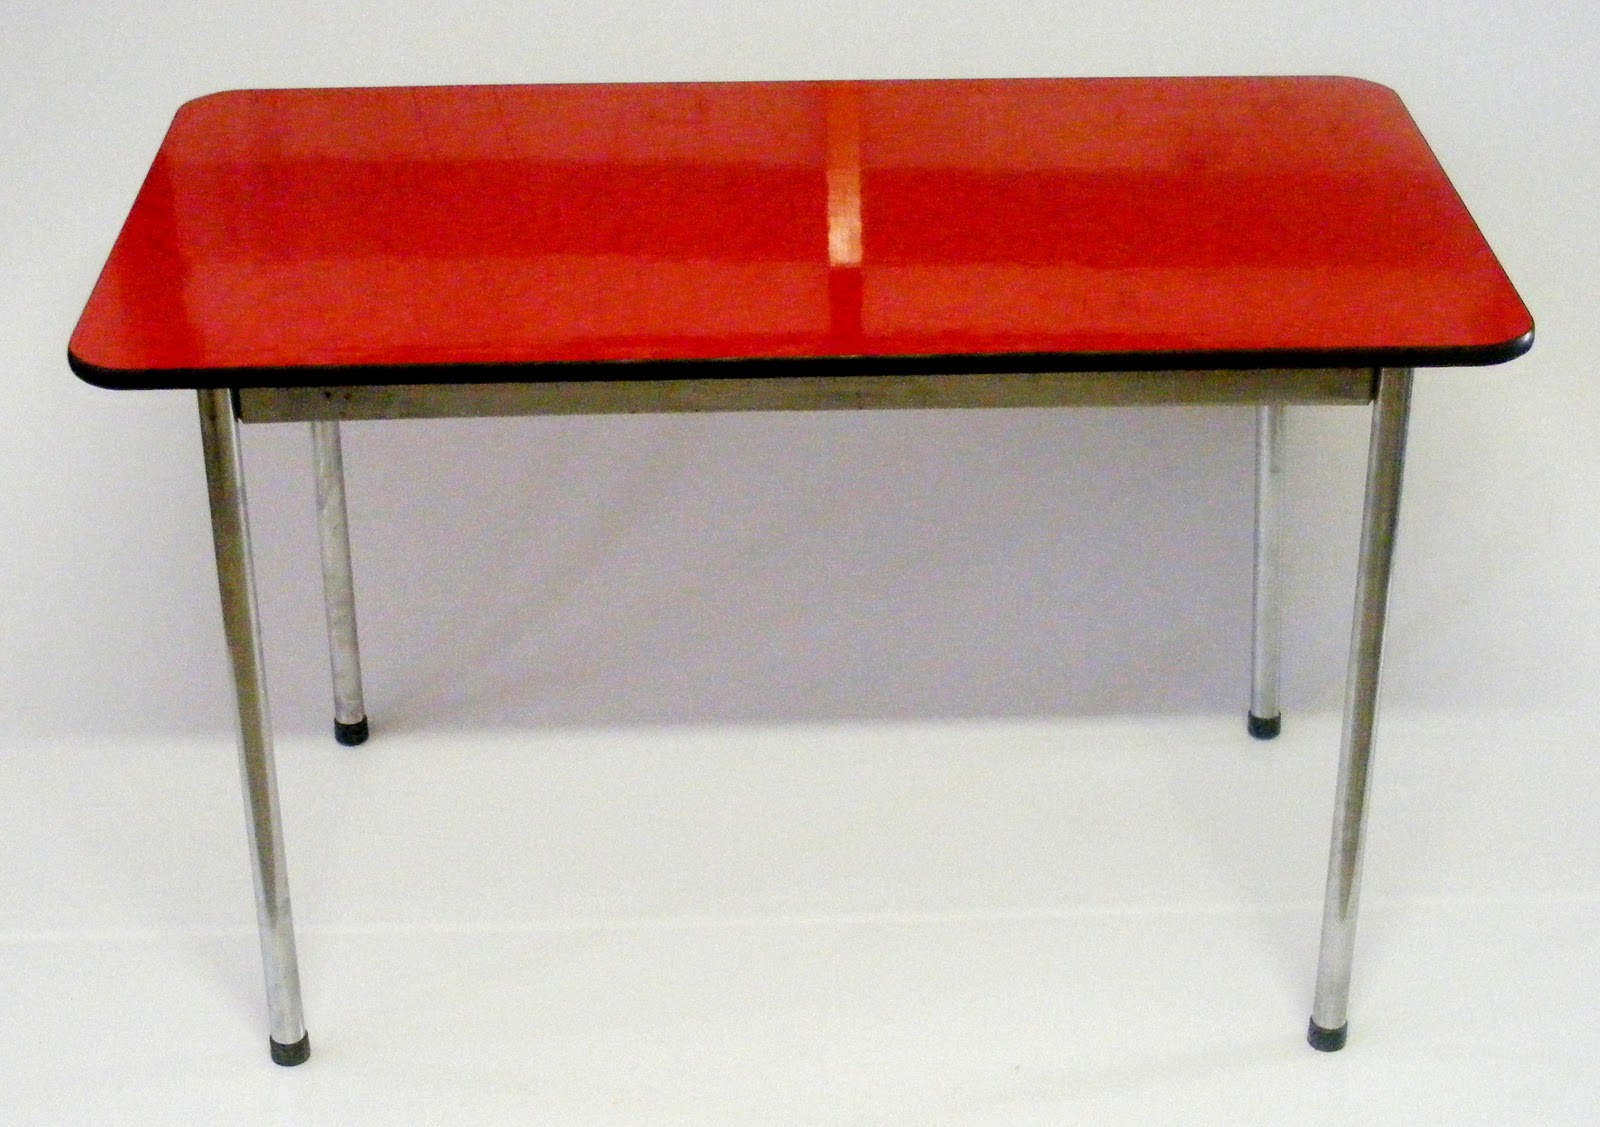 6 seater red formica kitchen table - Formica Kitchen Table